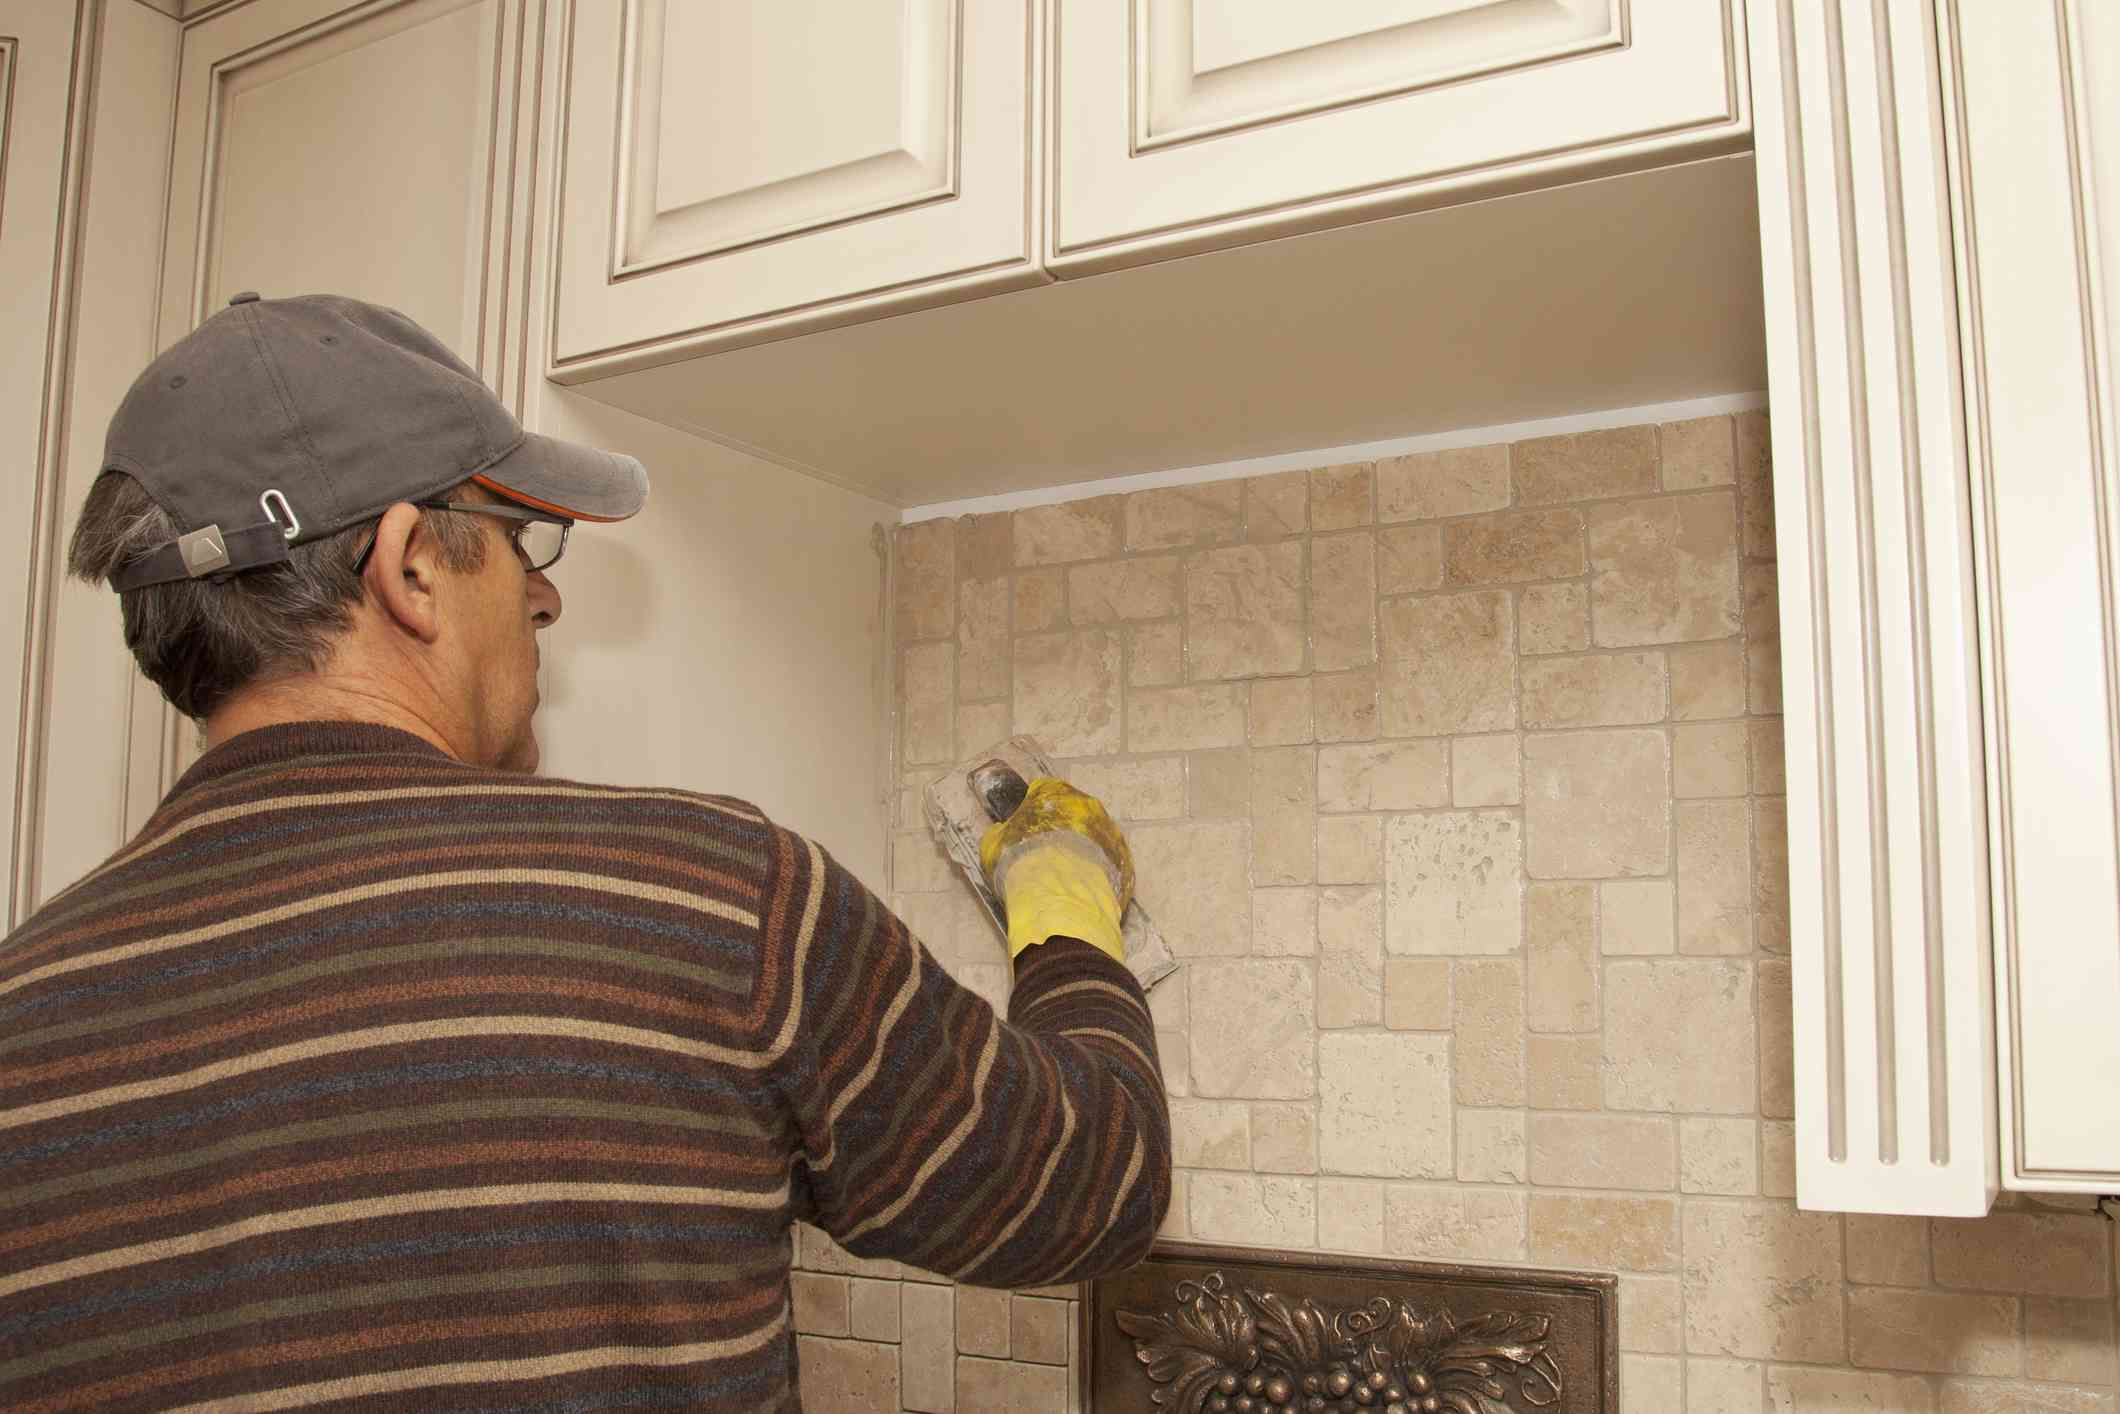 - Discover And Compare The Best Kitchen Backsplash Materials